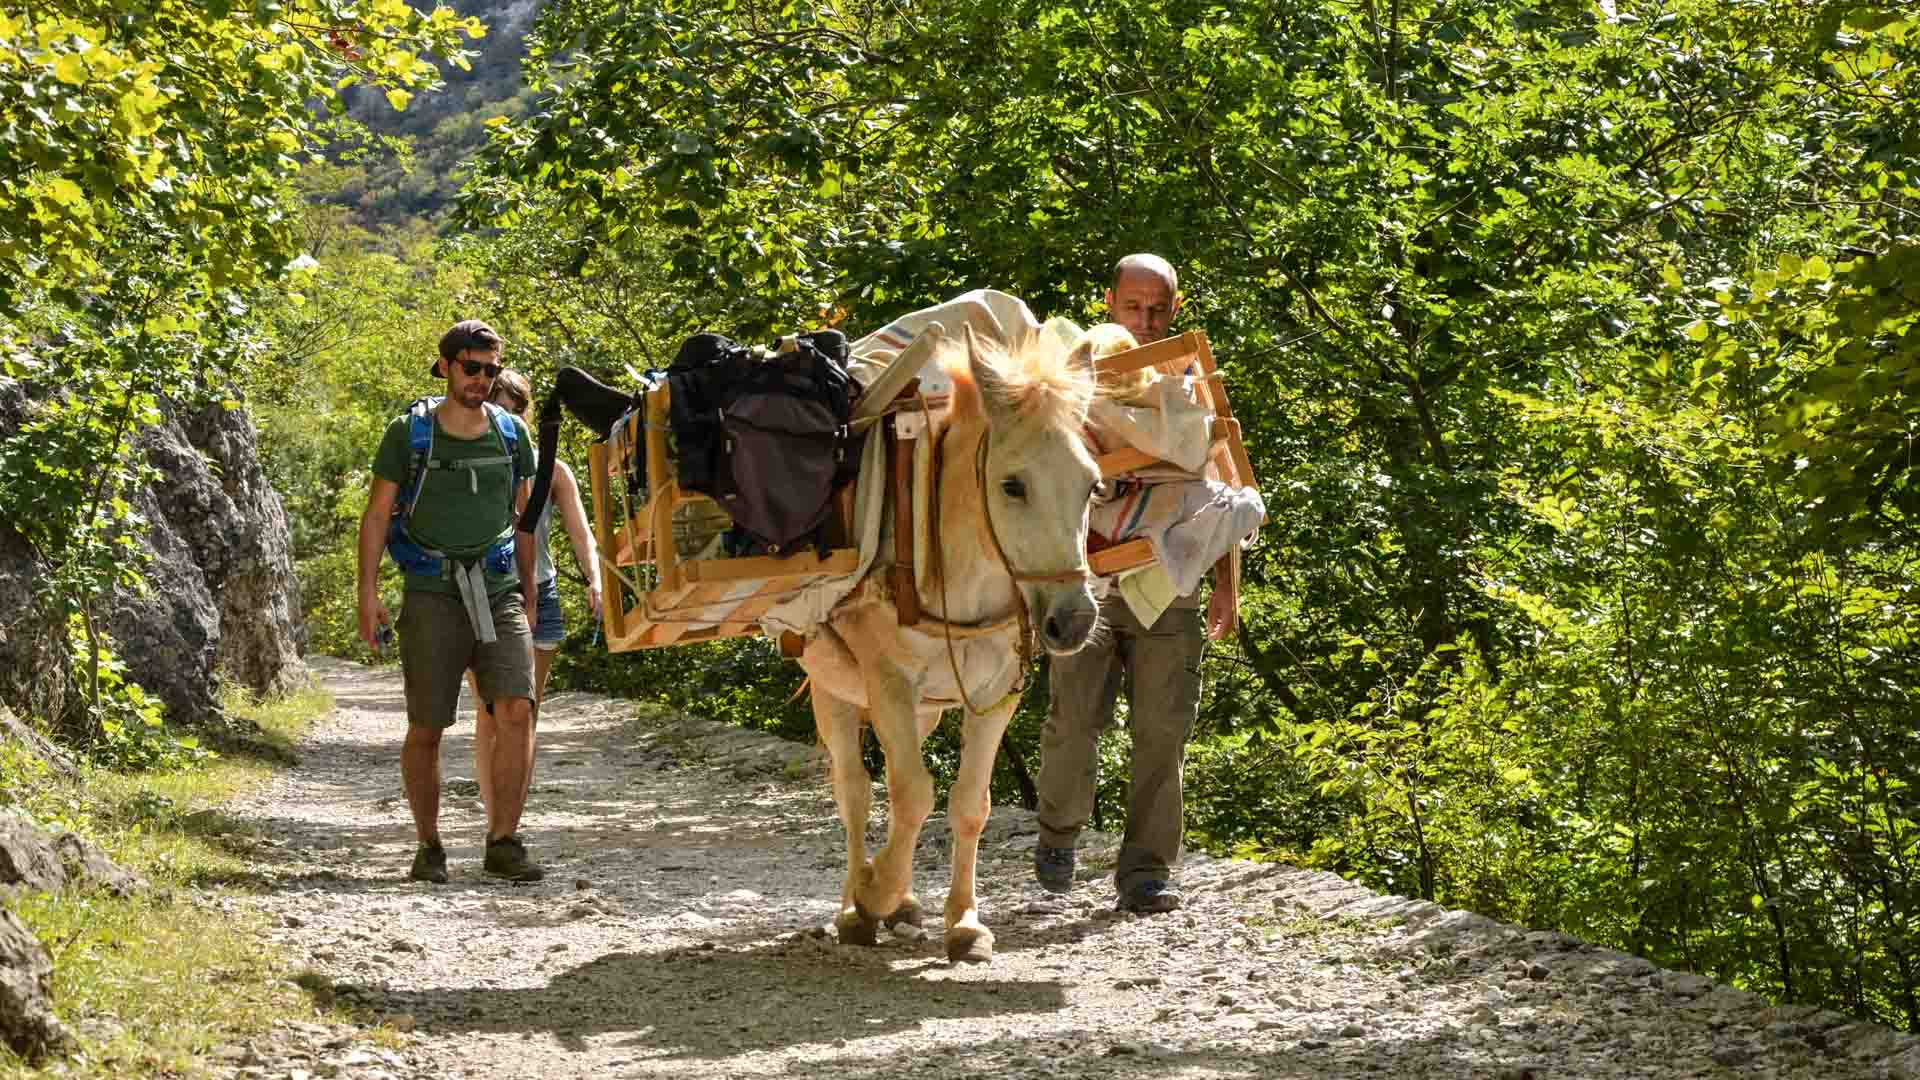 People of Croatia | Hiking-Paklenica | Raftrek Adventure Travel Croatia